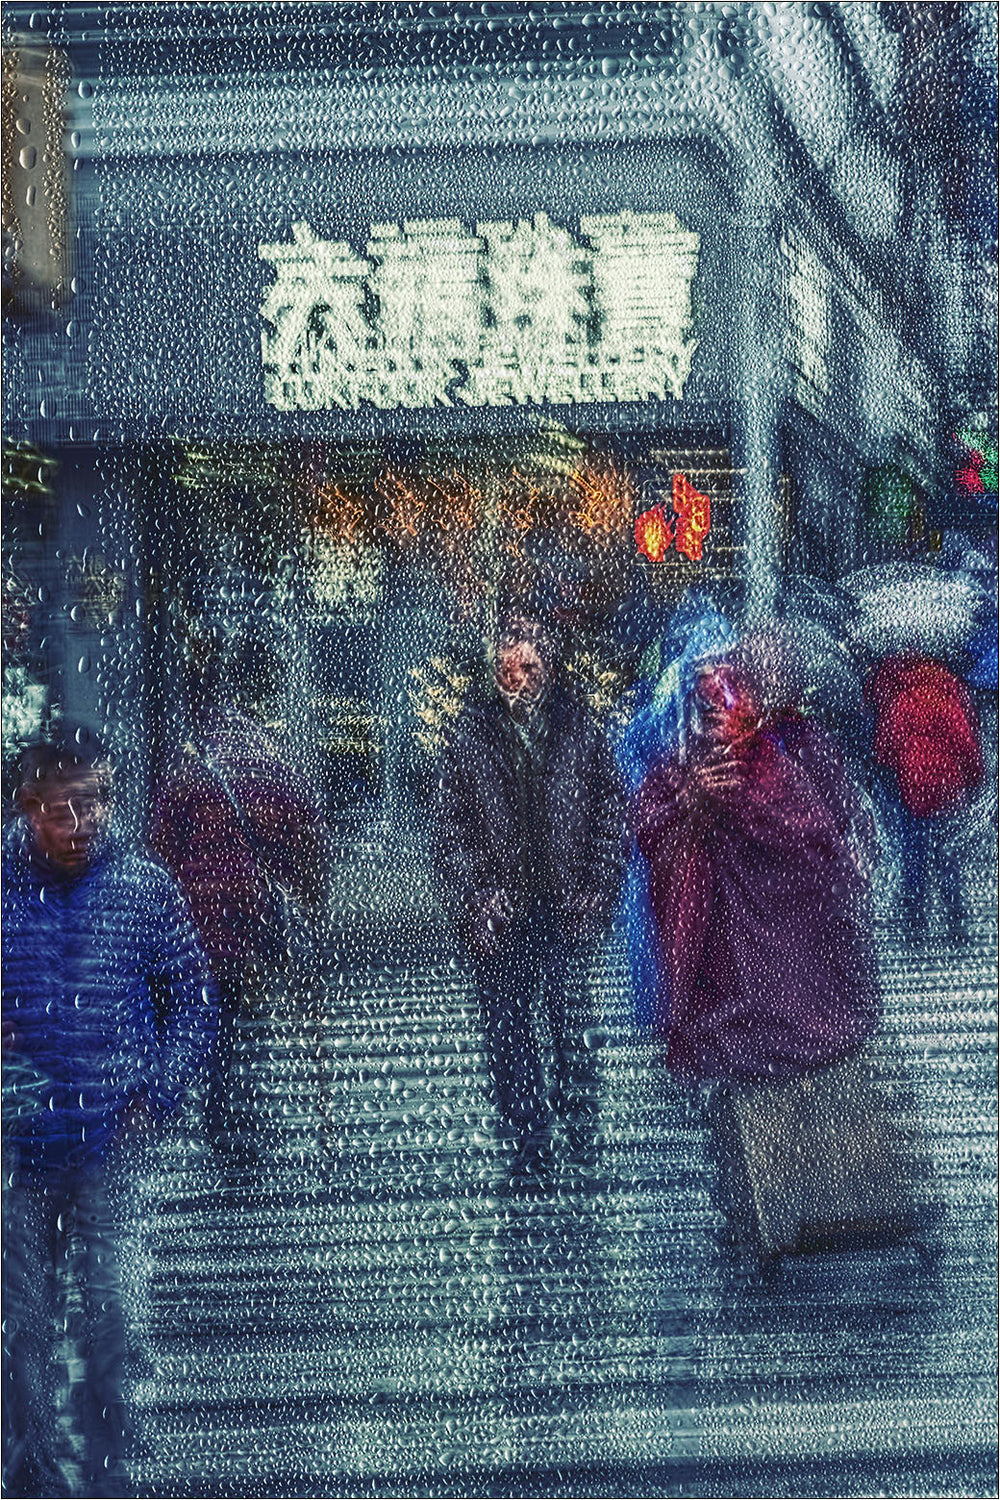 Rain in Chinatown, New York. [2/3] | New York Through the Rain Series. | Limited Edition Fine Art Print.